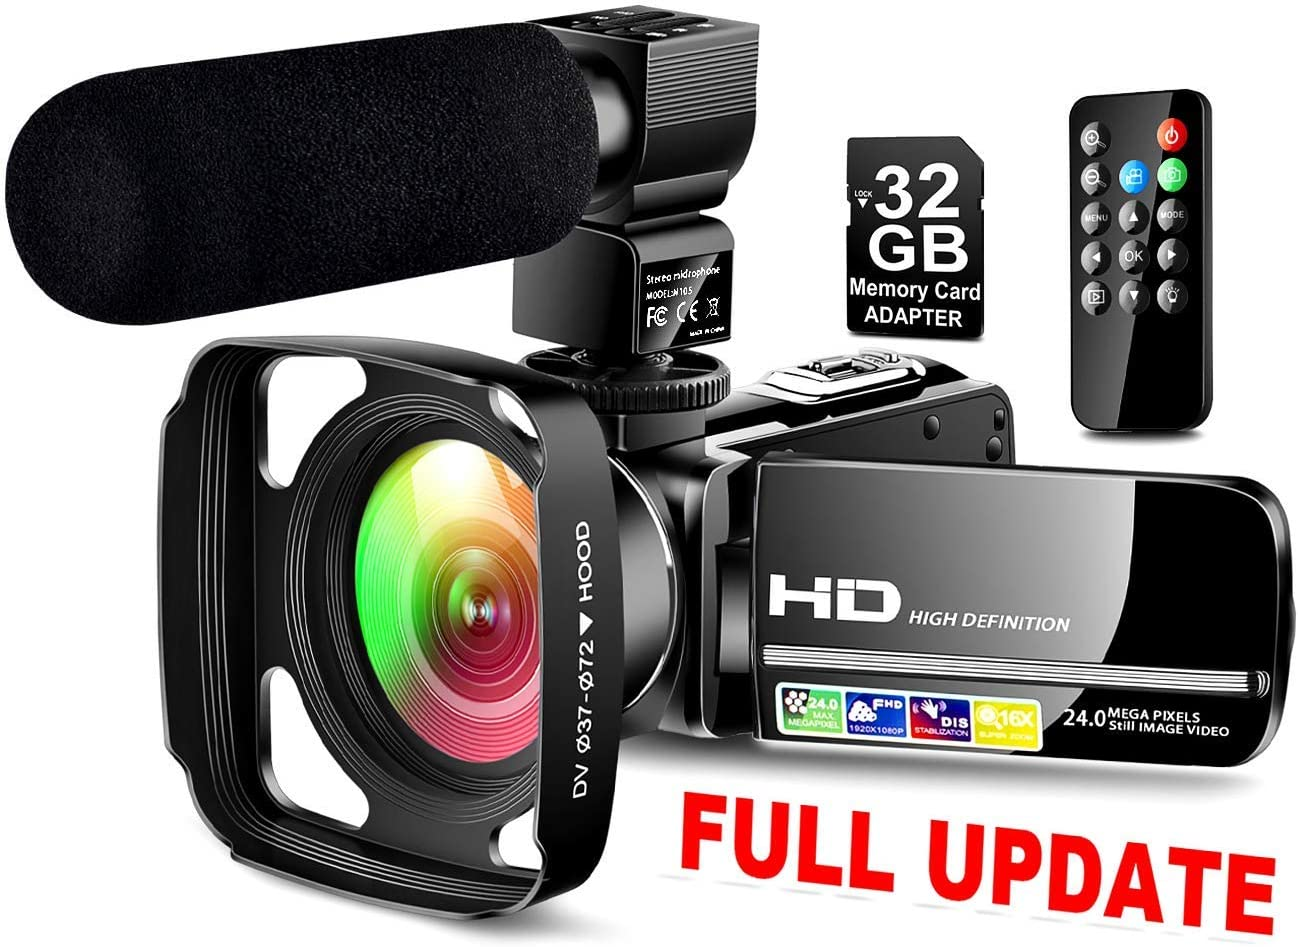 【Full Upgrade】 Ultra HD Video Camera Camcorder with Powerful Microphone 1080P Vlogging Camera Recorder 3.0 Inch IPS Screen 16X Zoom Camcorders YouTube Camera Remote Control, Lens Hood,Battery Charger